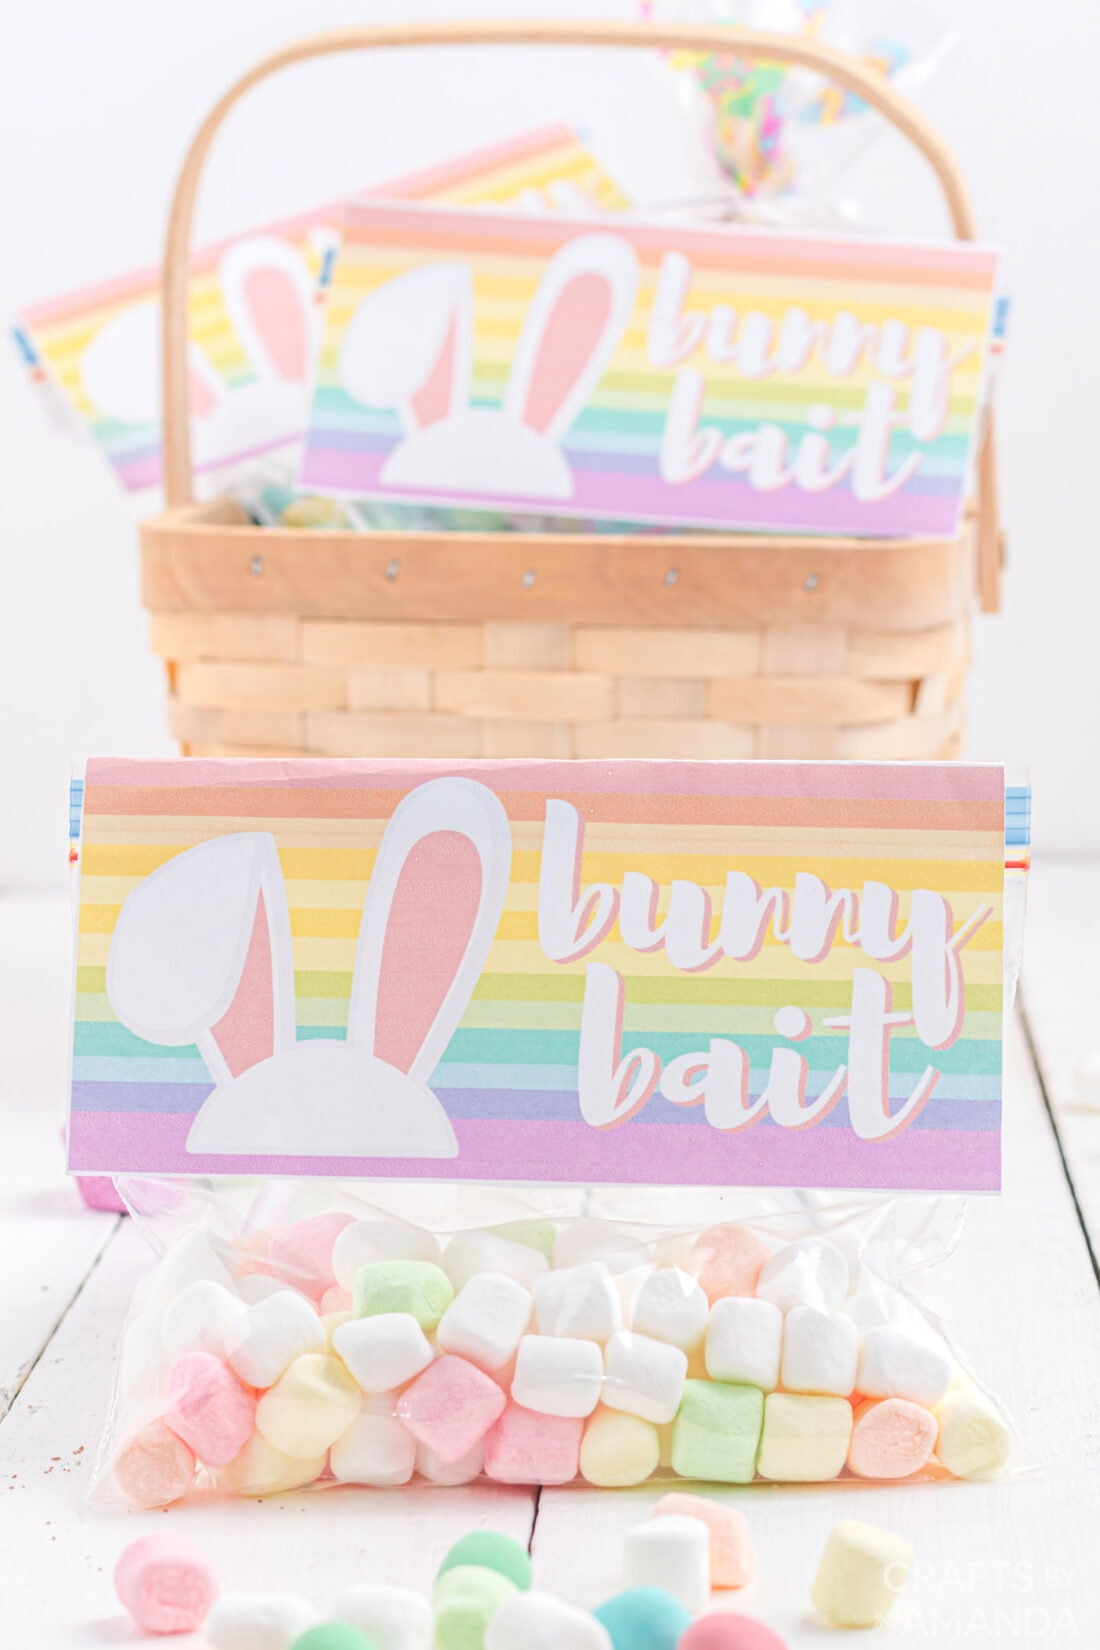 bags of marshmallows for easter